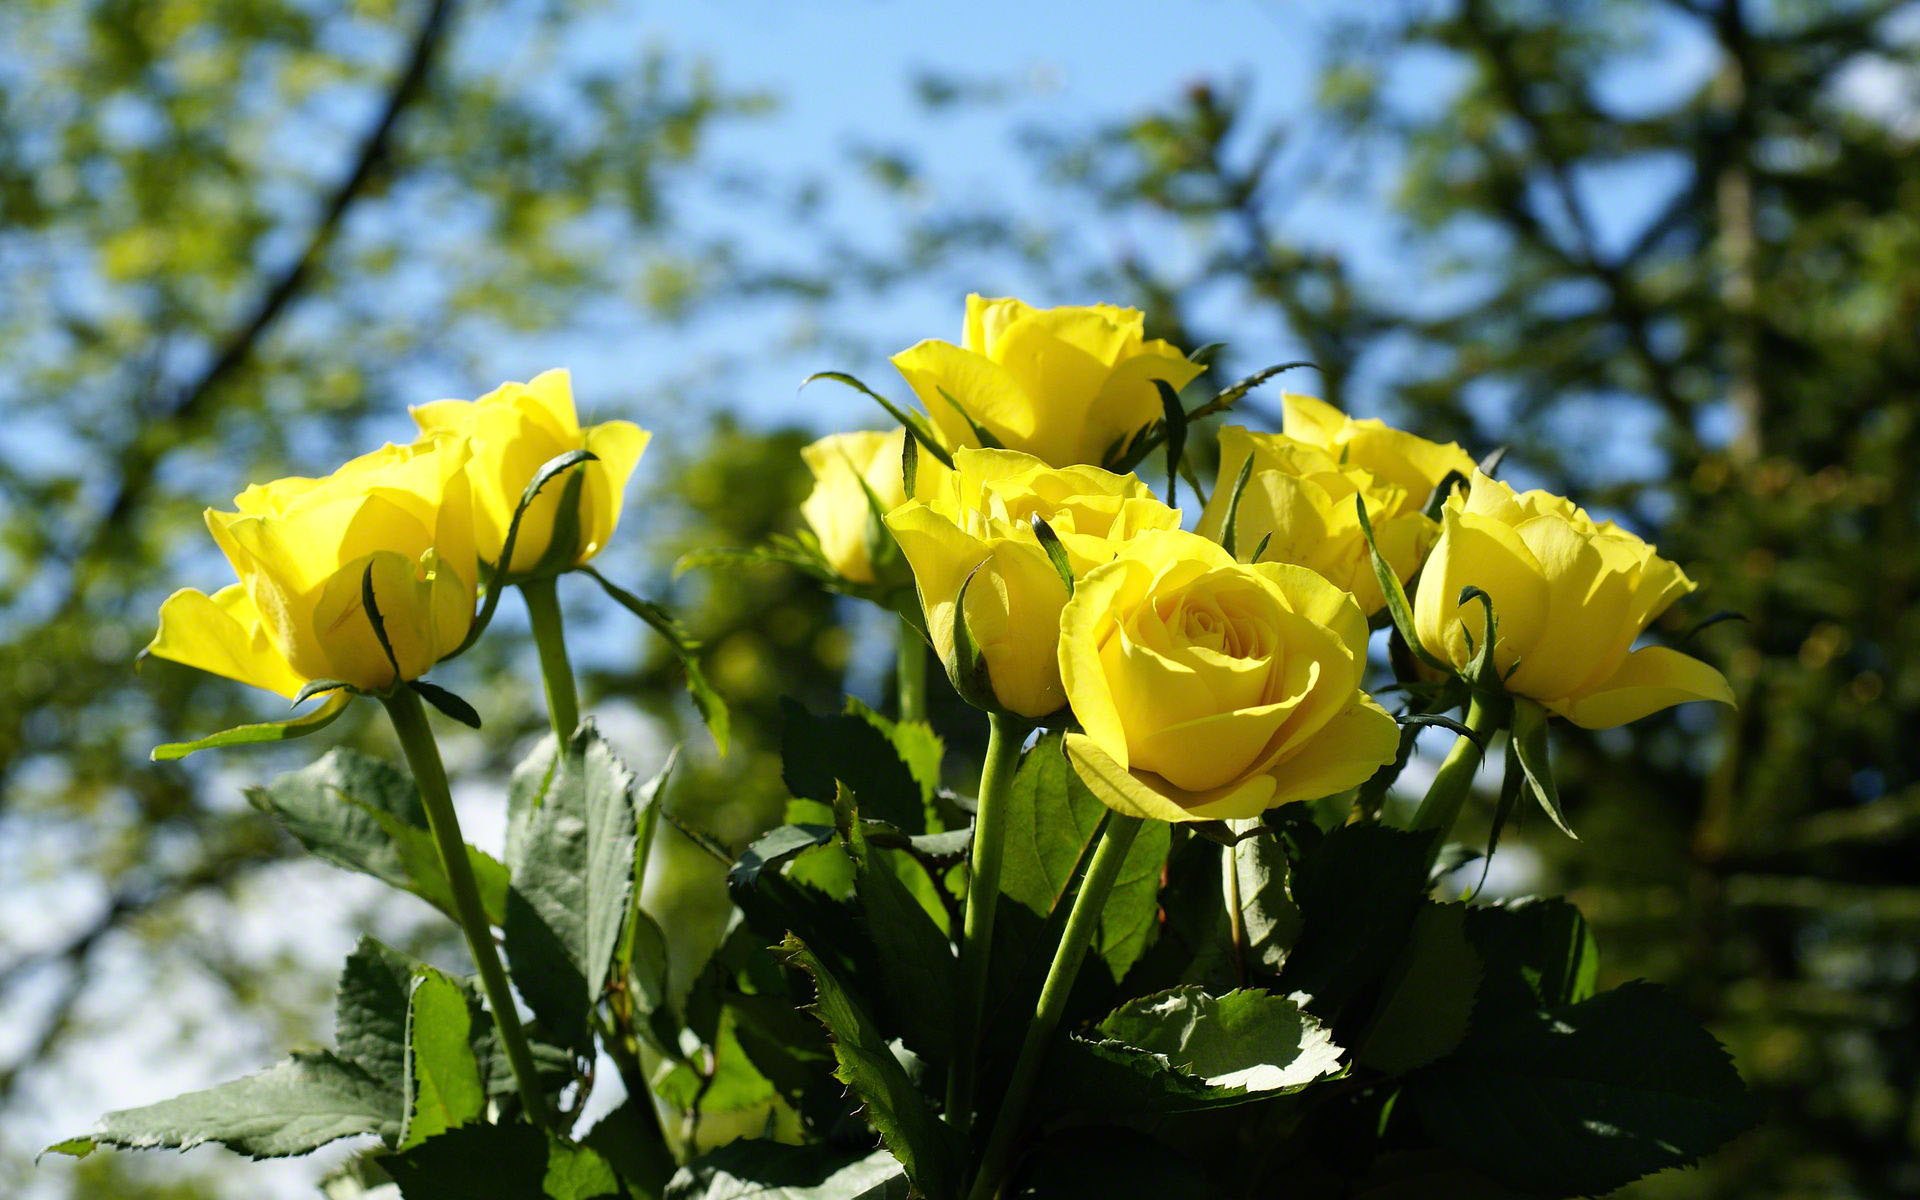 Yellow Rose Pictures - Yellow Roses In Nature , HD Wallpaper & Backgrounds